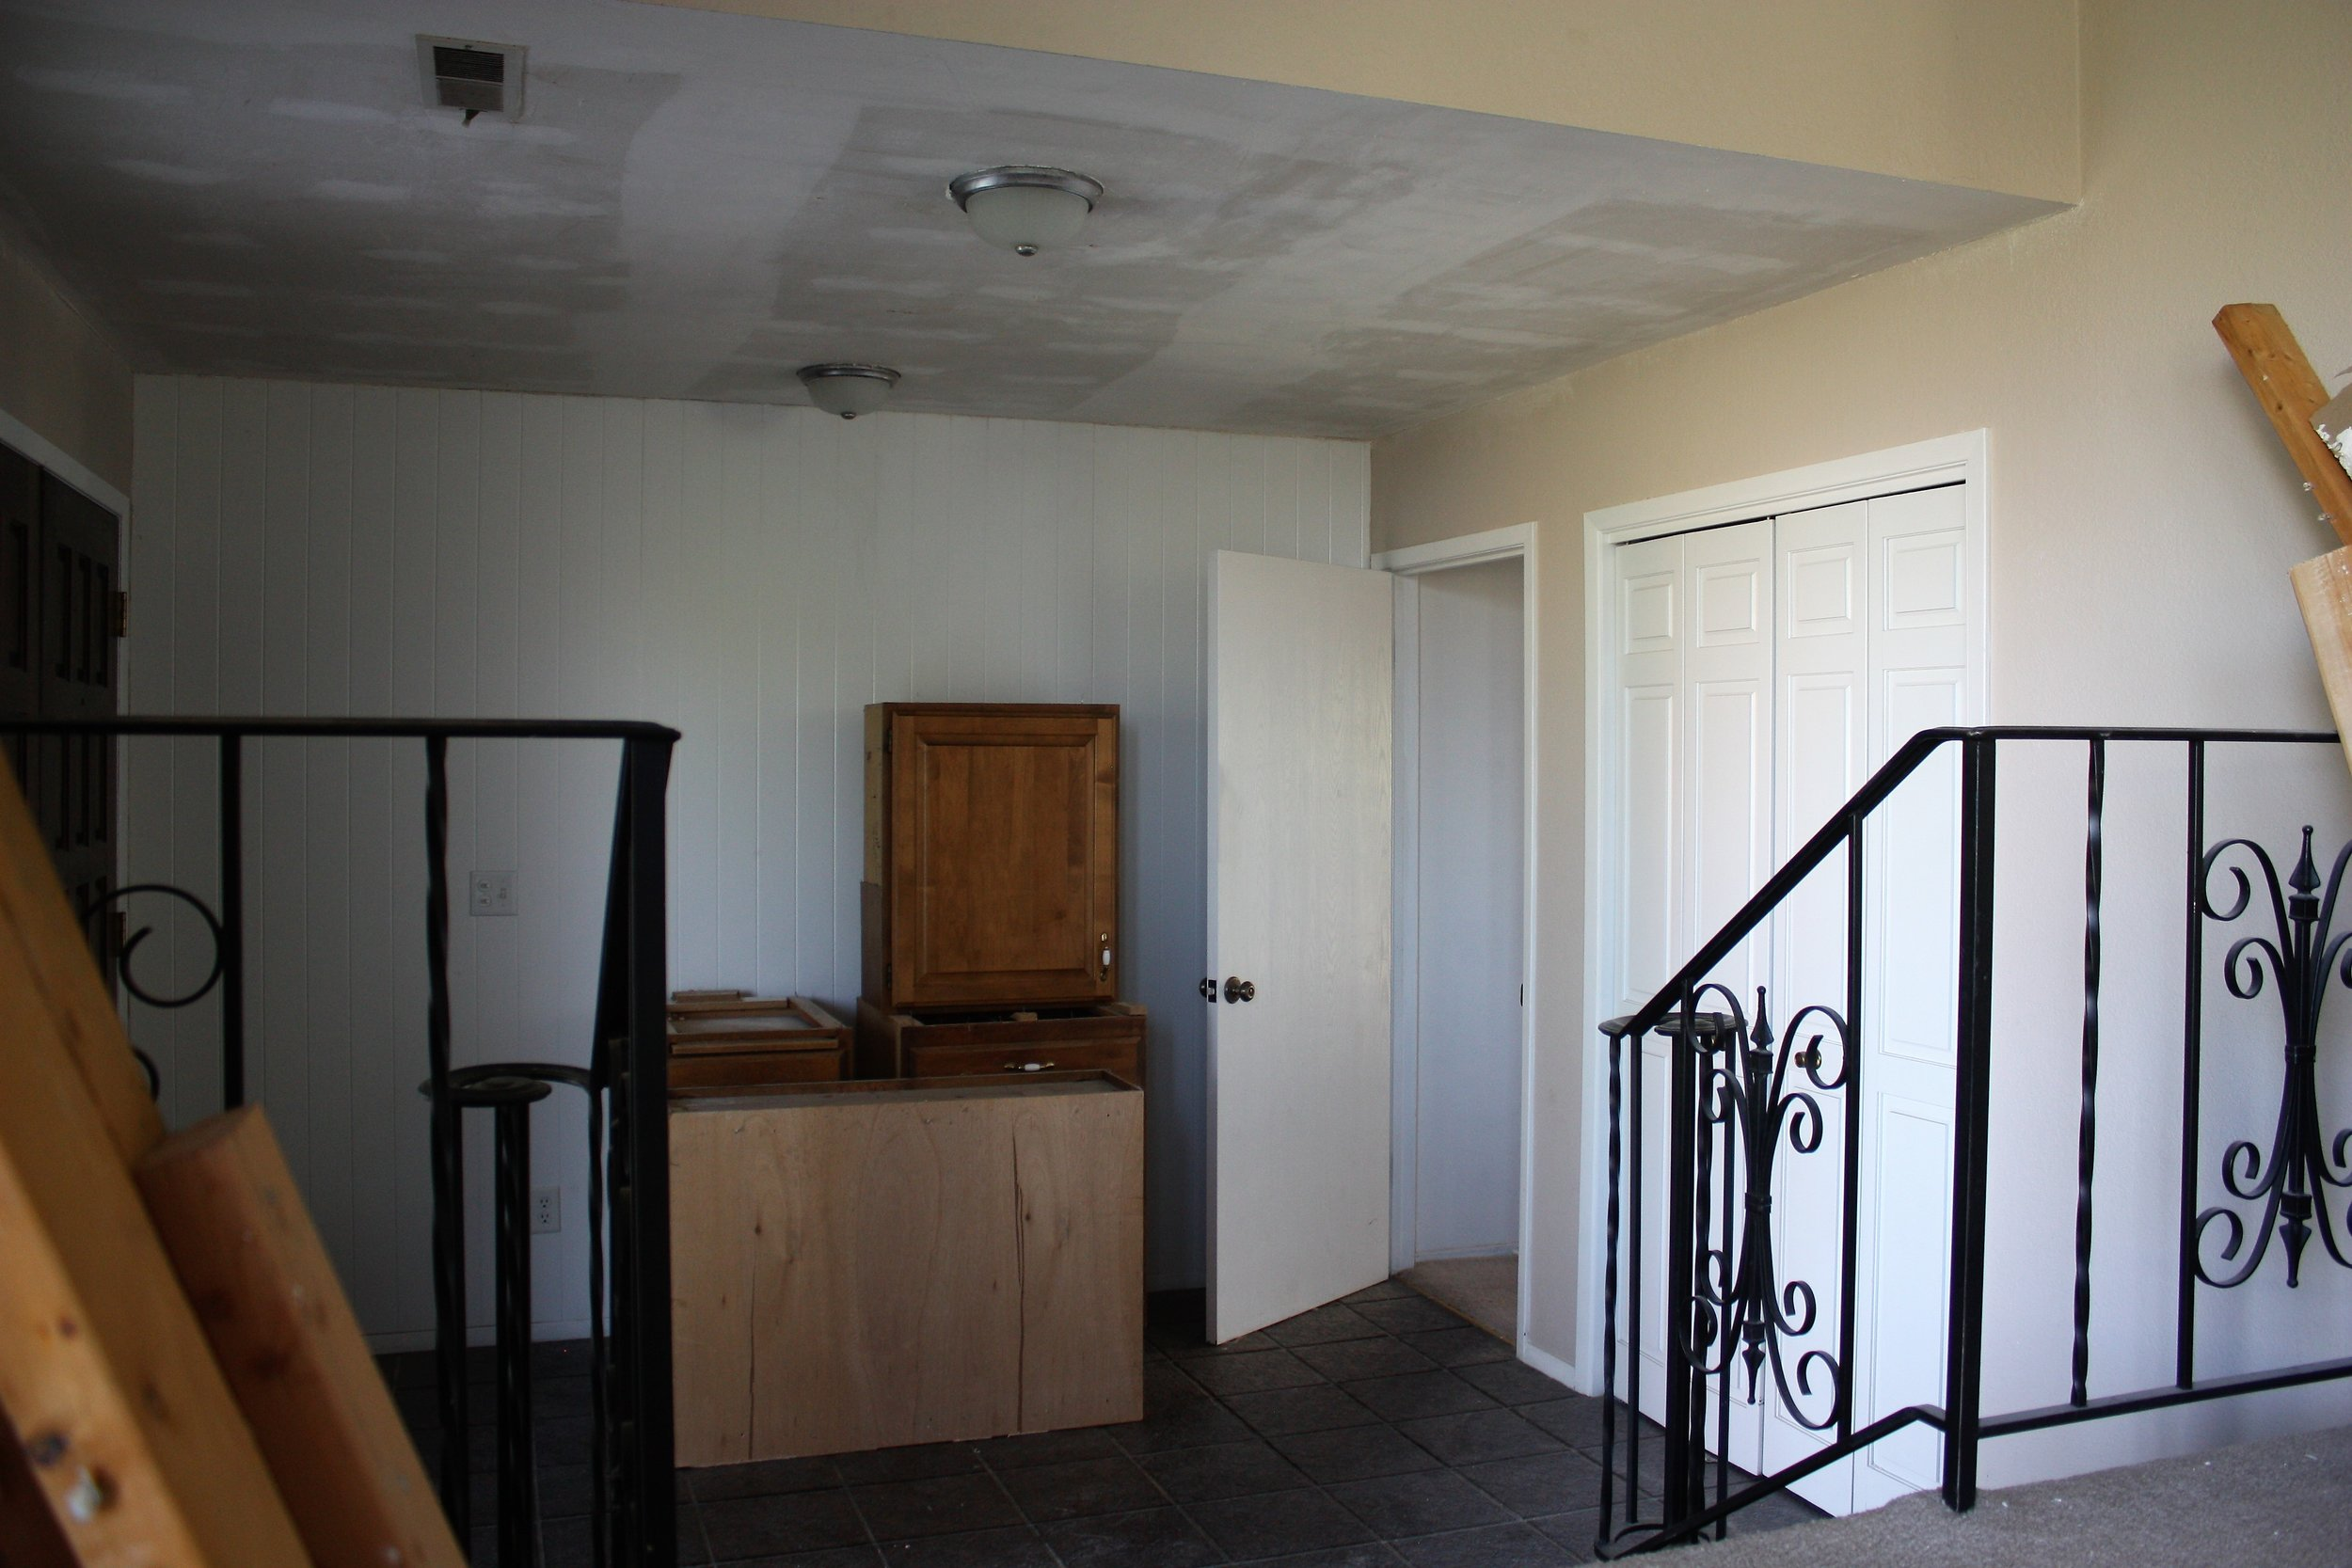 And here is the view of the entryway from the living room. This is one of the spaces I am most looking forward to giving new life to.